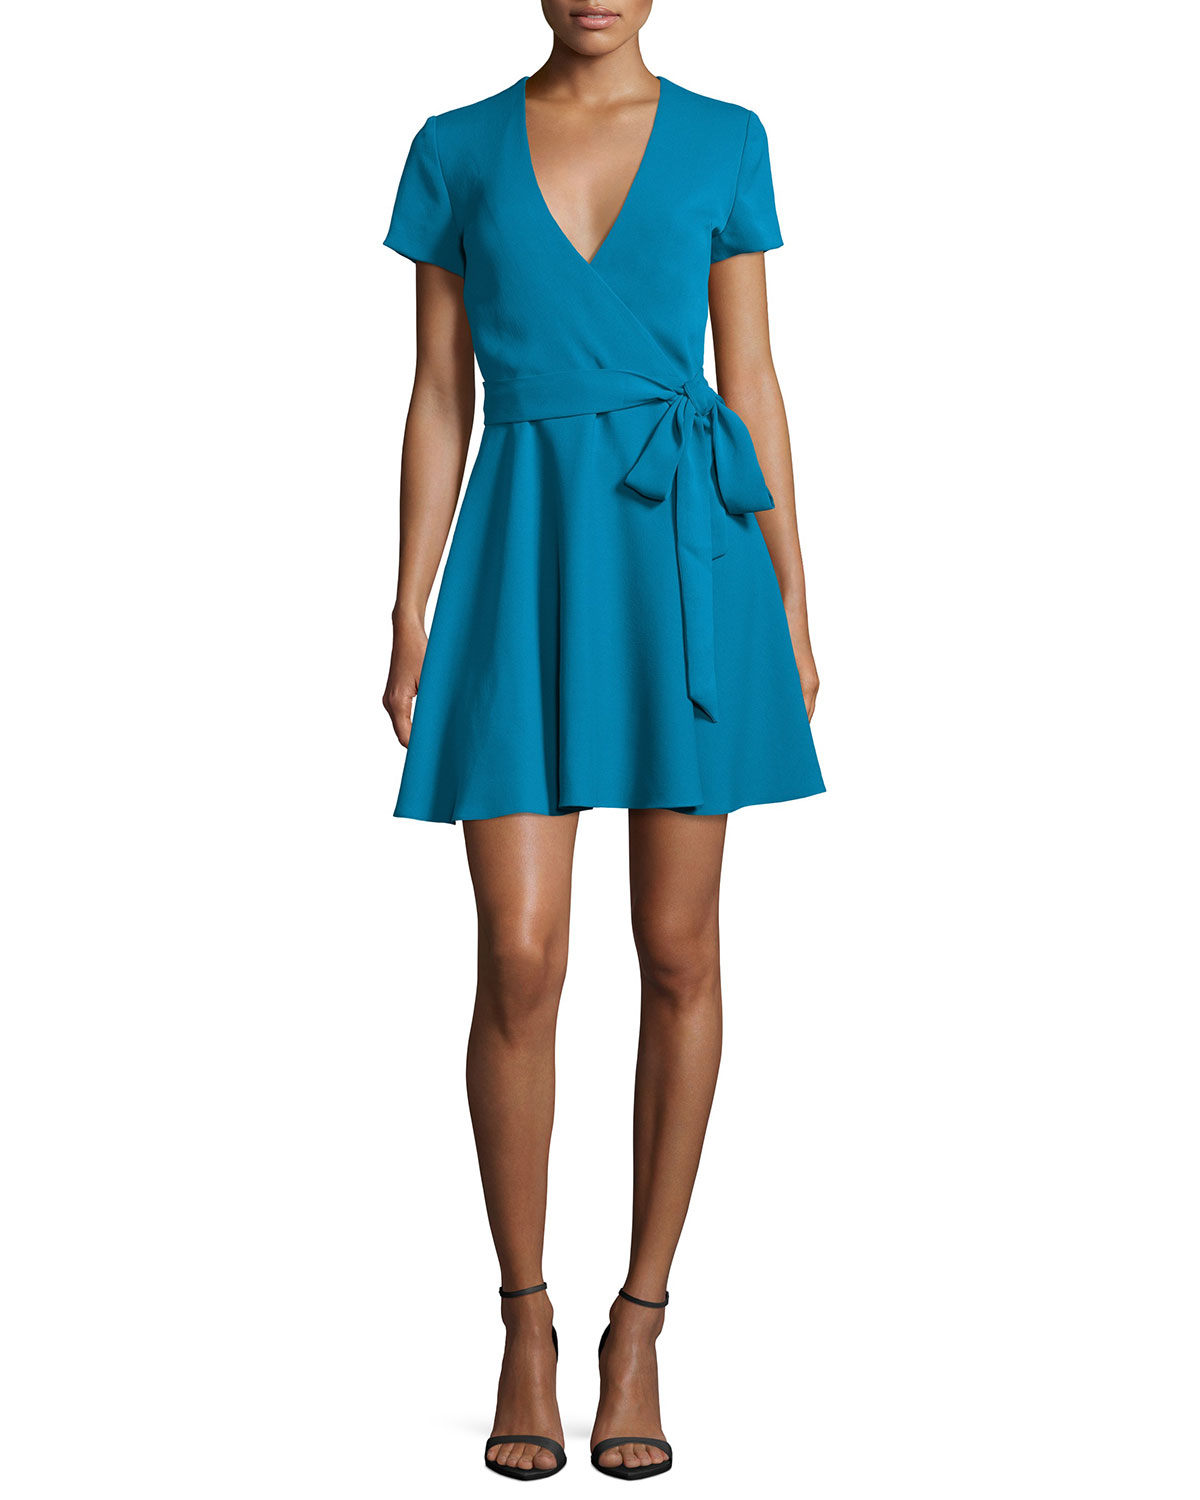 Alice + Olivia Adrianna Turquoise Mock-Wrap Dress